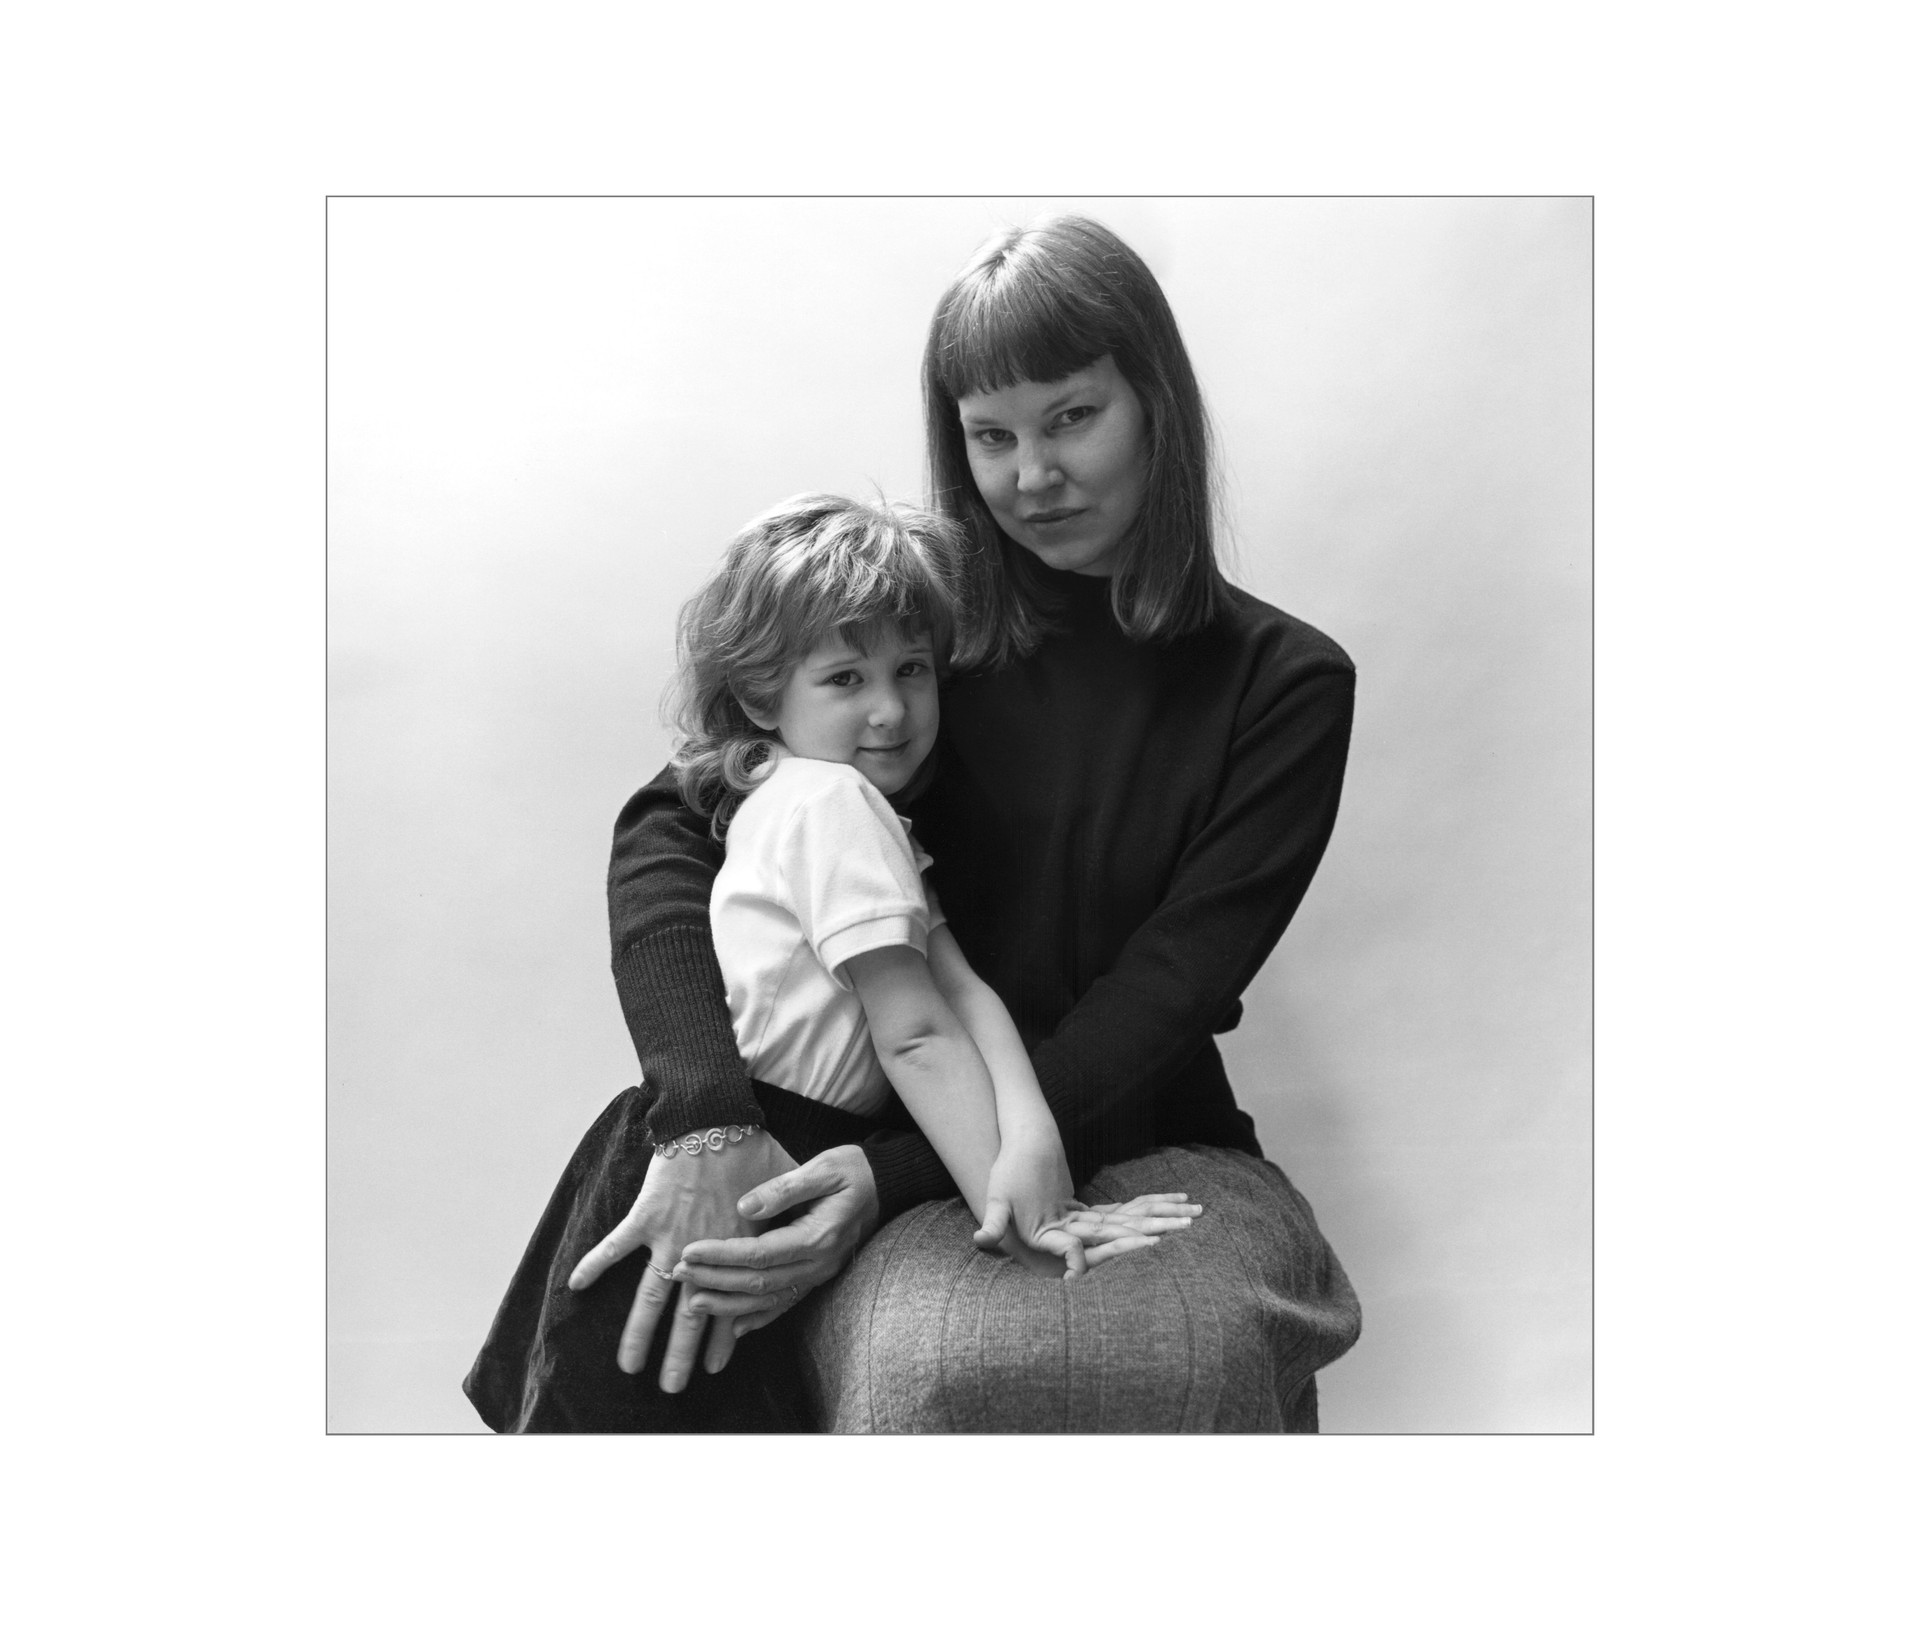 Marjory with her daughter, Laura, Ottawa, Archival Print, 1989.